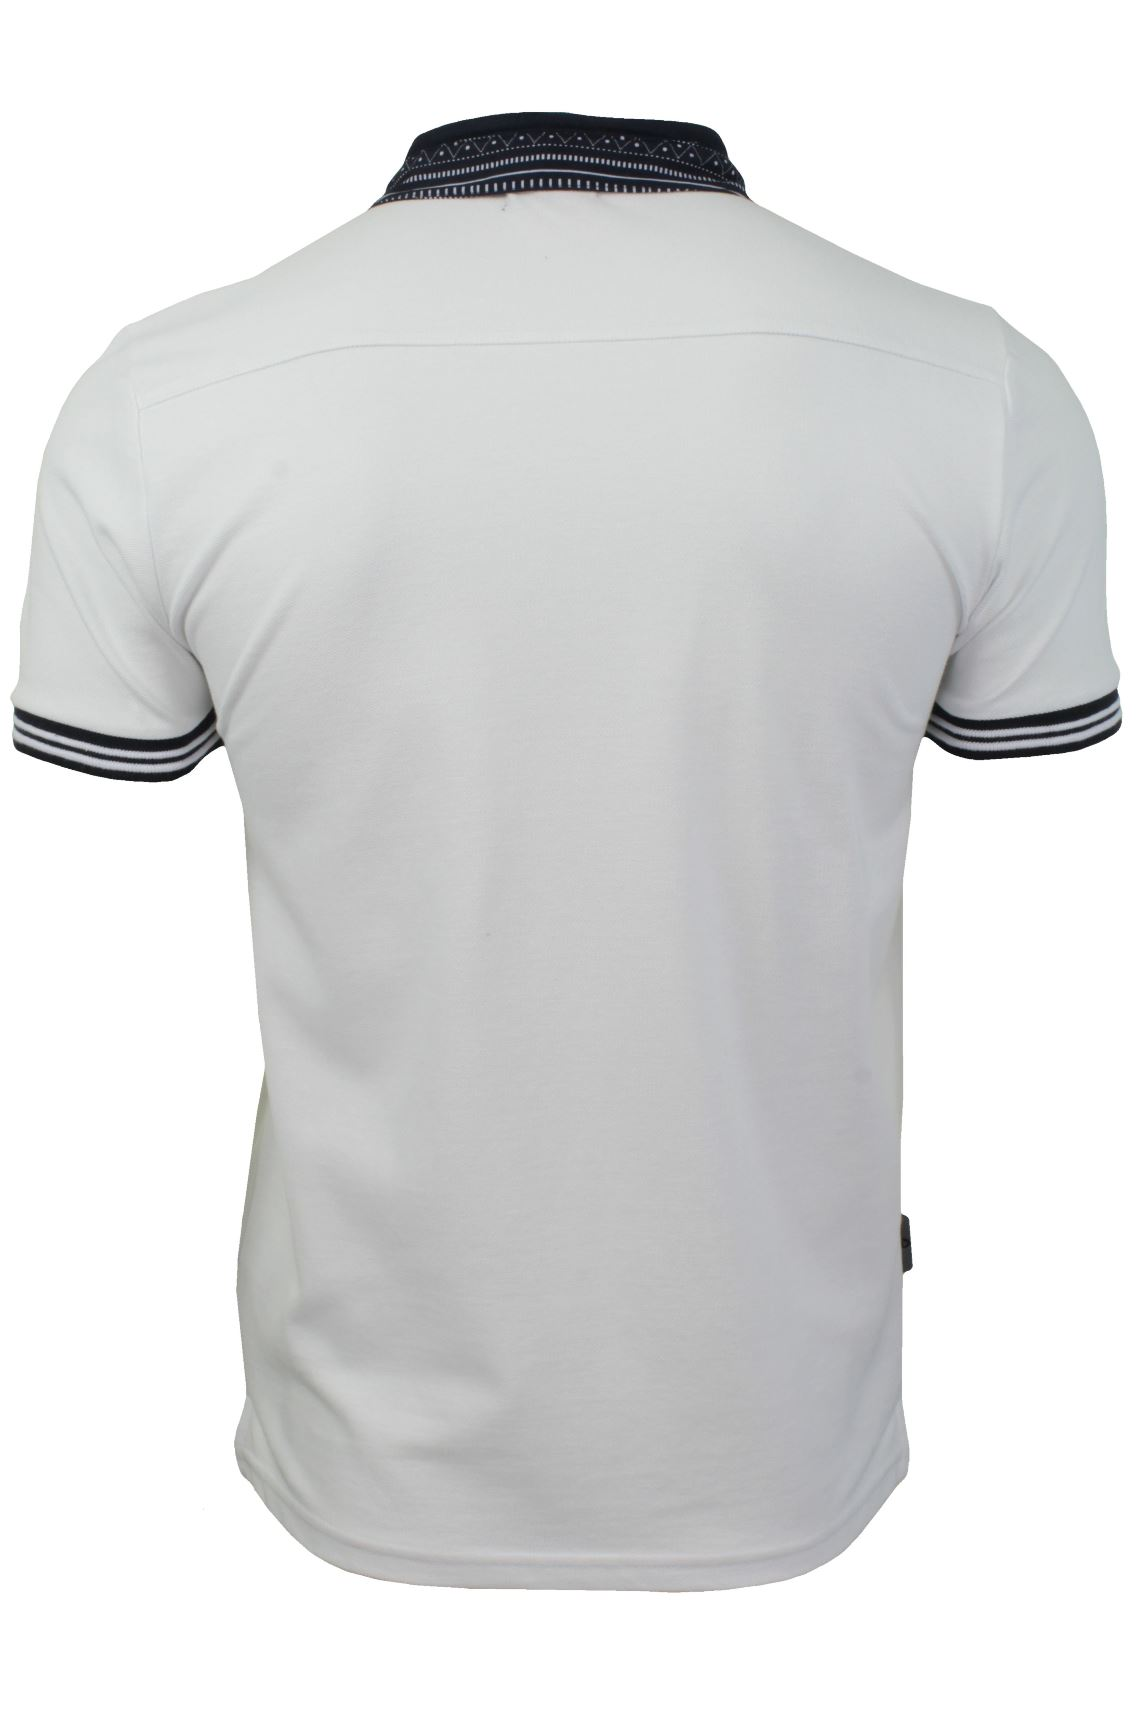 Mens-Polo-T-Shirt-by-Voi-Jeans-039-Winters-039 thumbnail 11